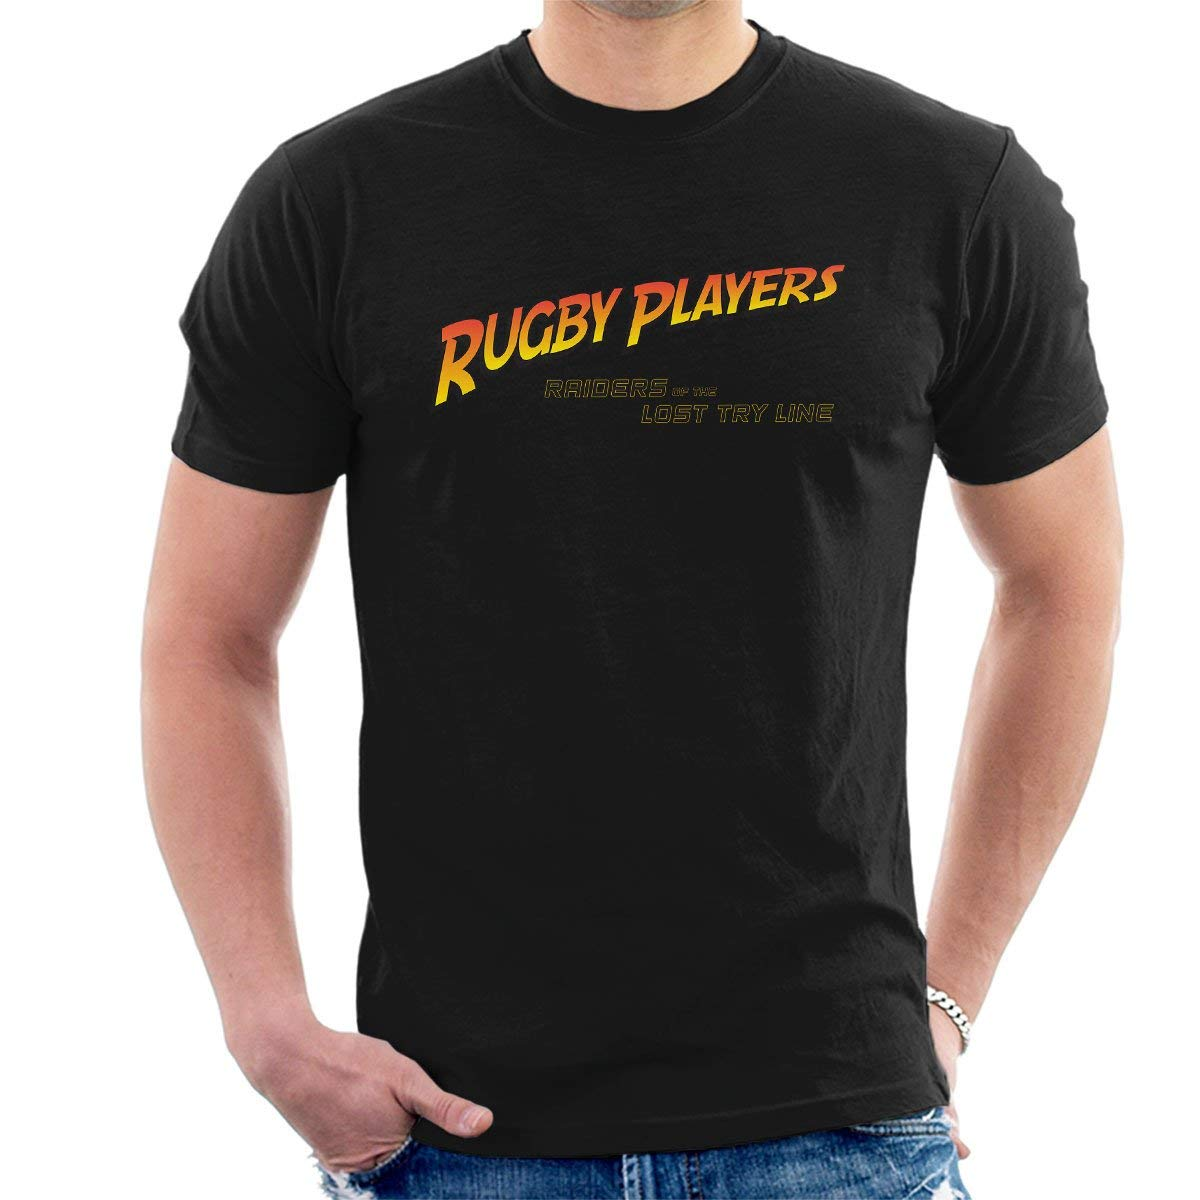 Indiana Jones Rugby Raiders Of The Lost Try Line S Tshirt